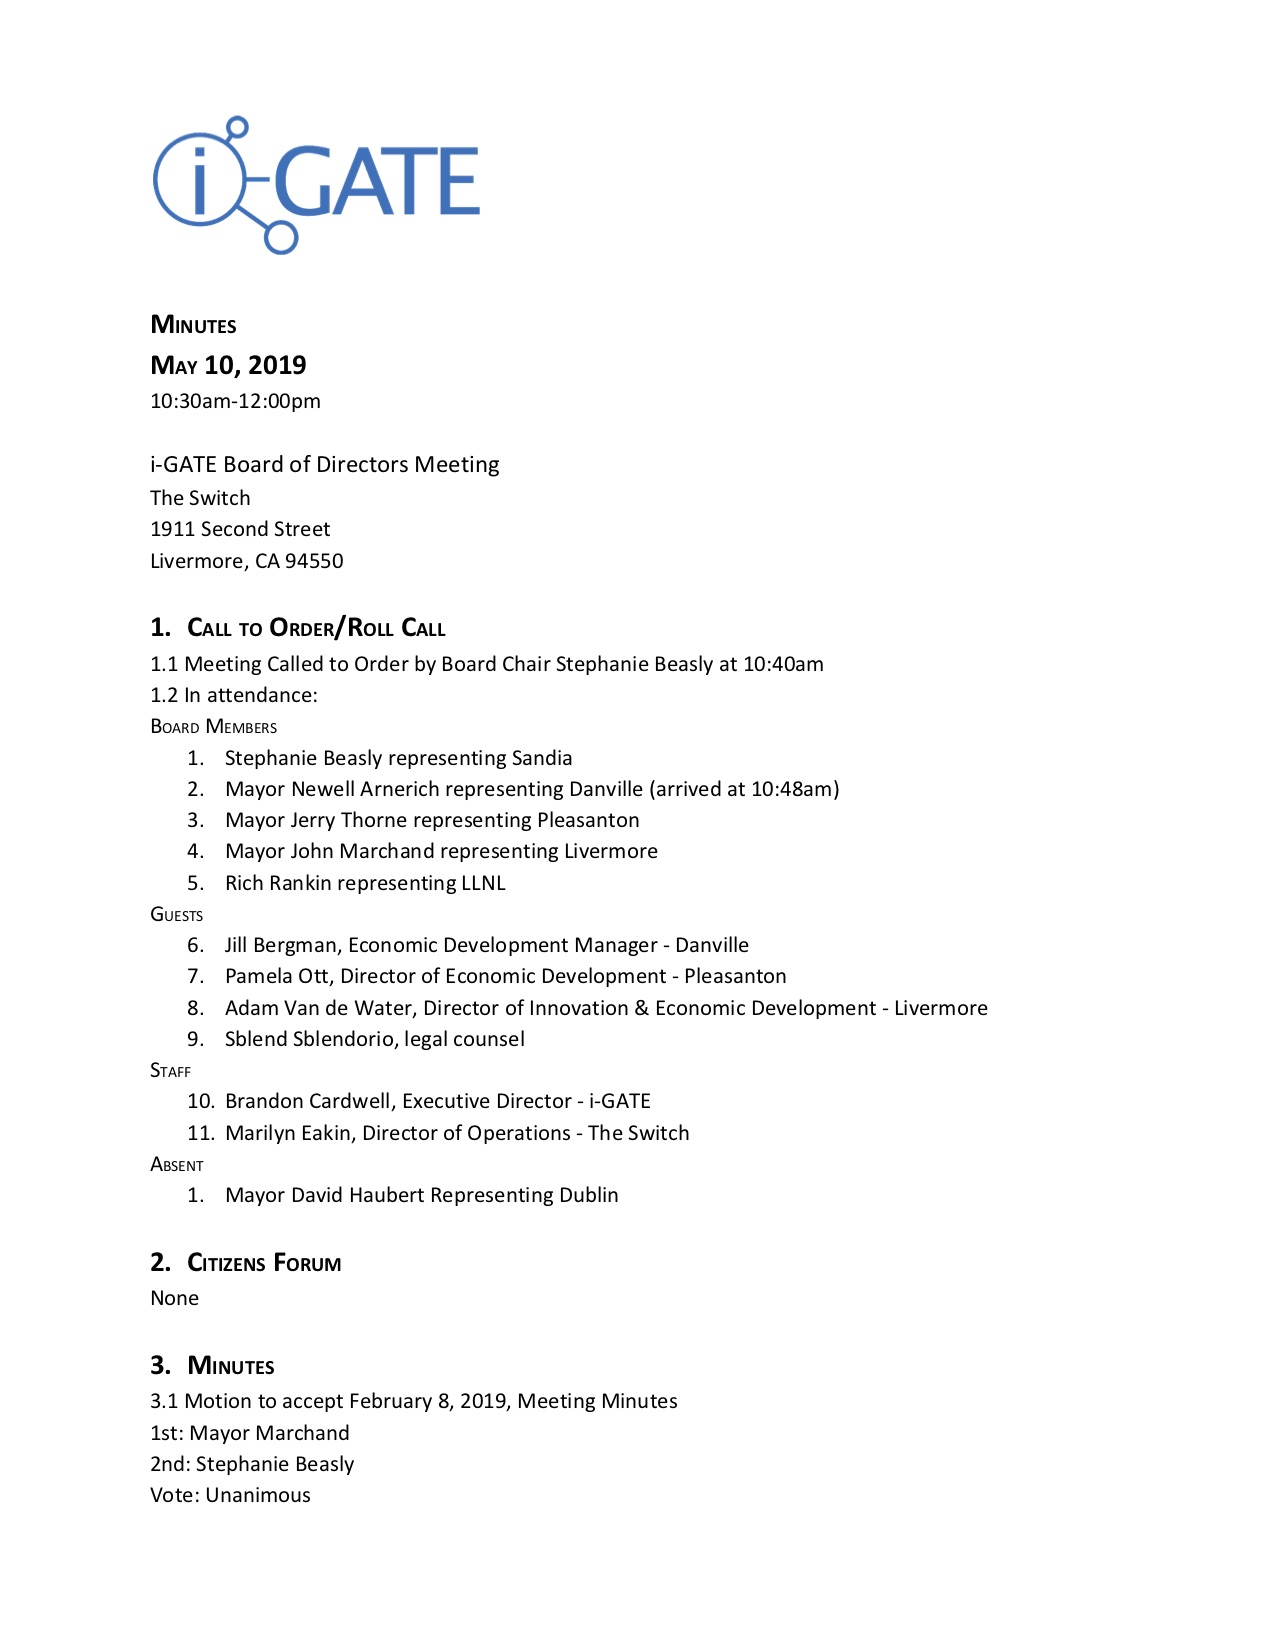 i-GATE Development Corporation Board Meeting Minutes May 2019.jpg